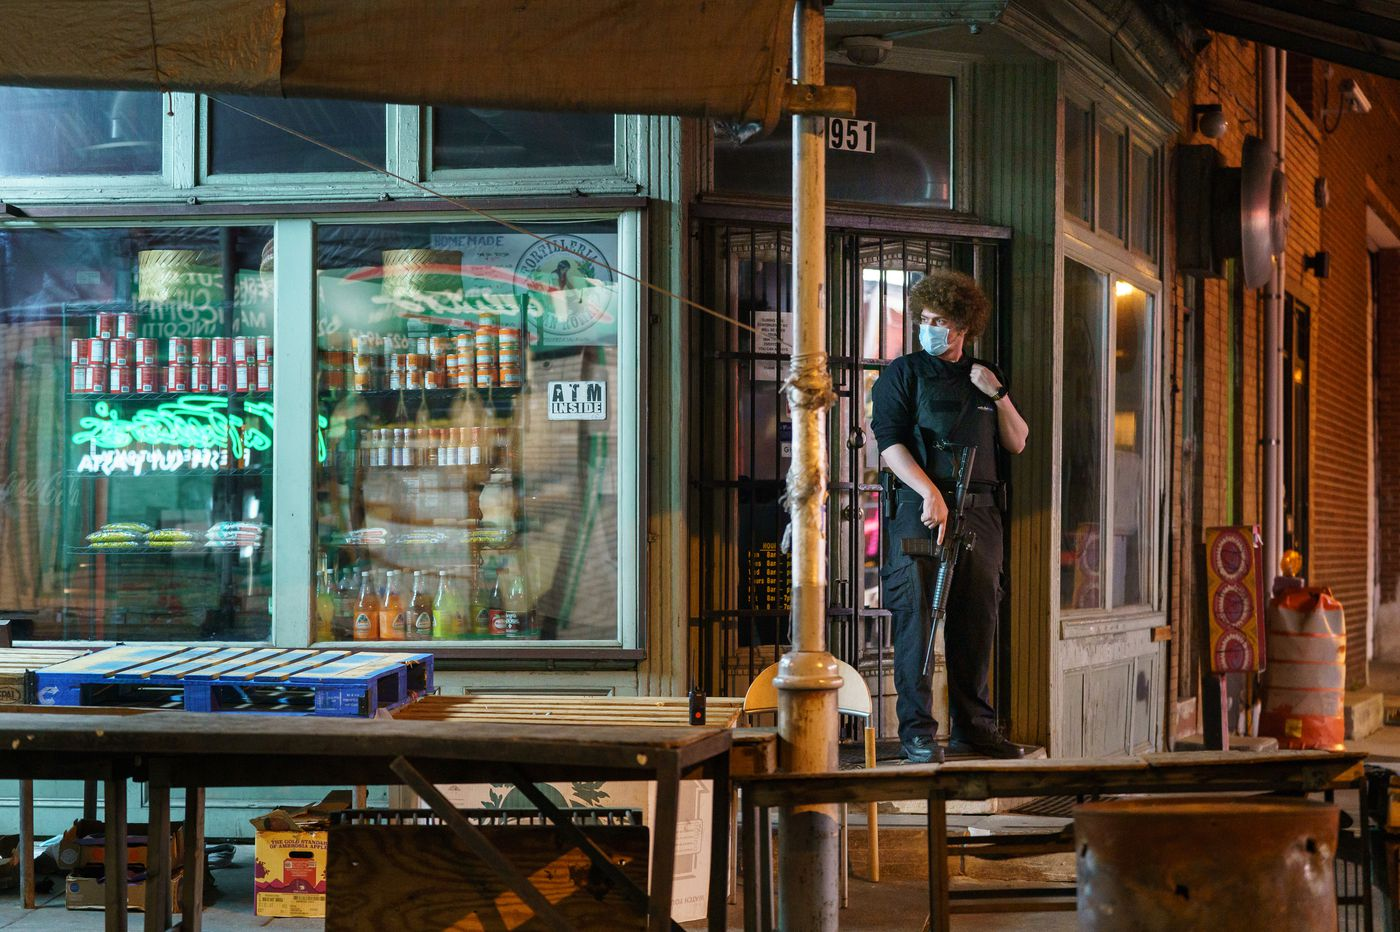 Italian Market and Manayunk business owners hired armed security agents to scare off looters